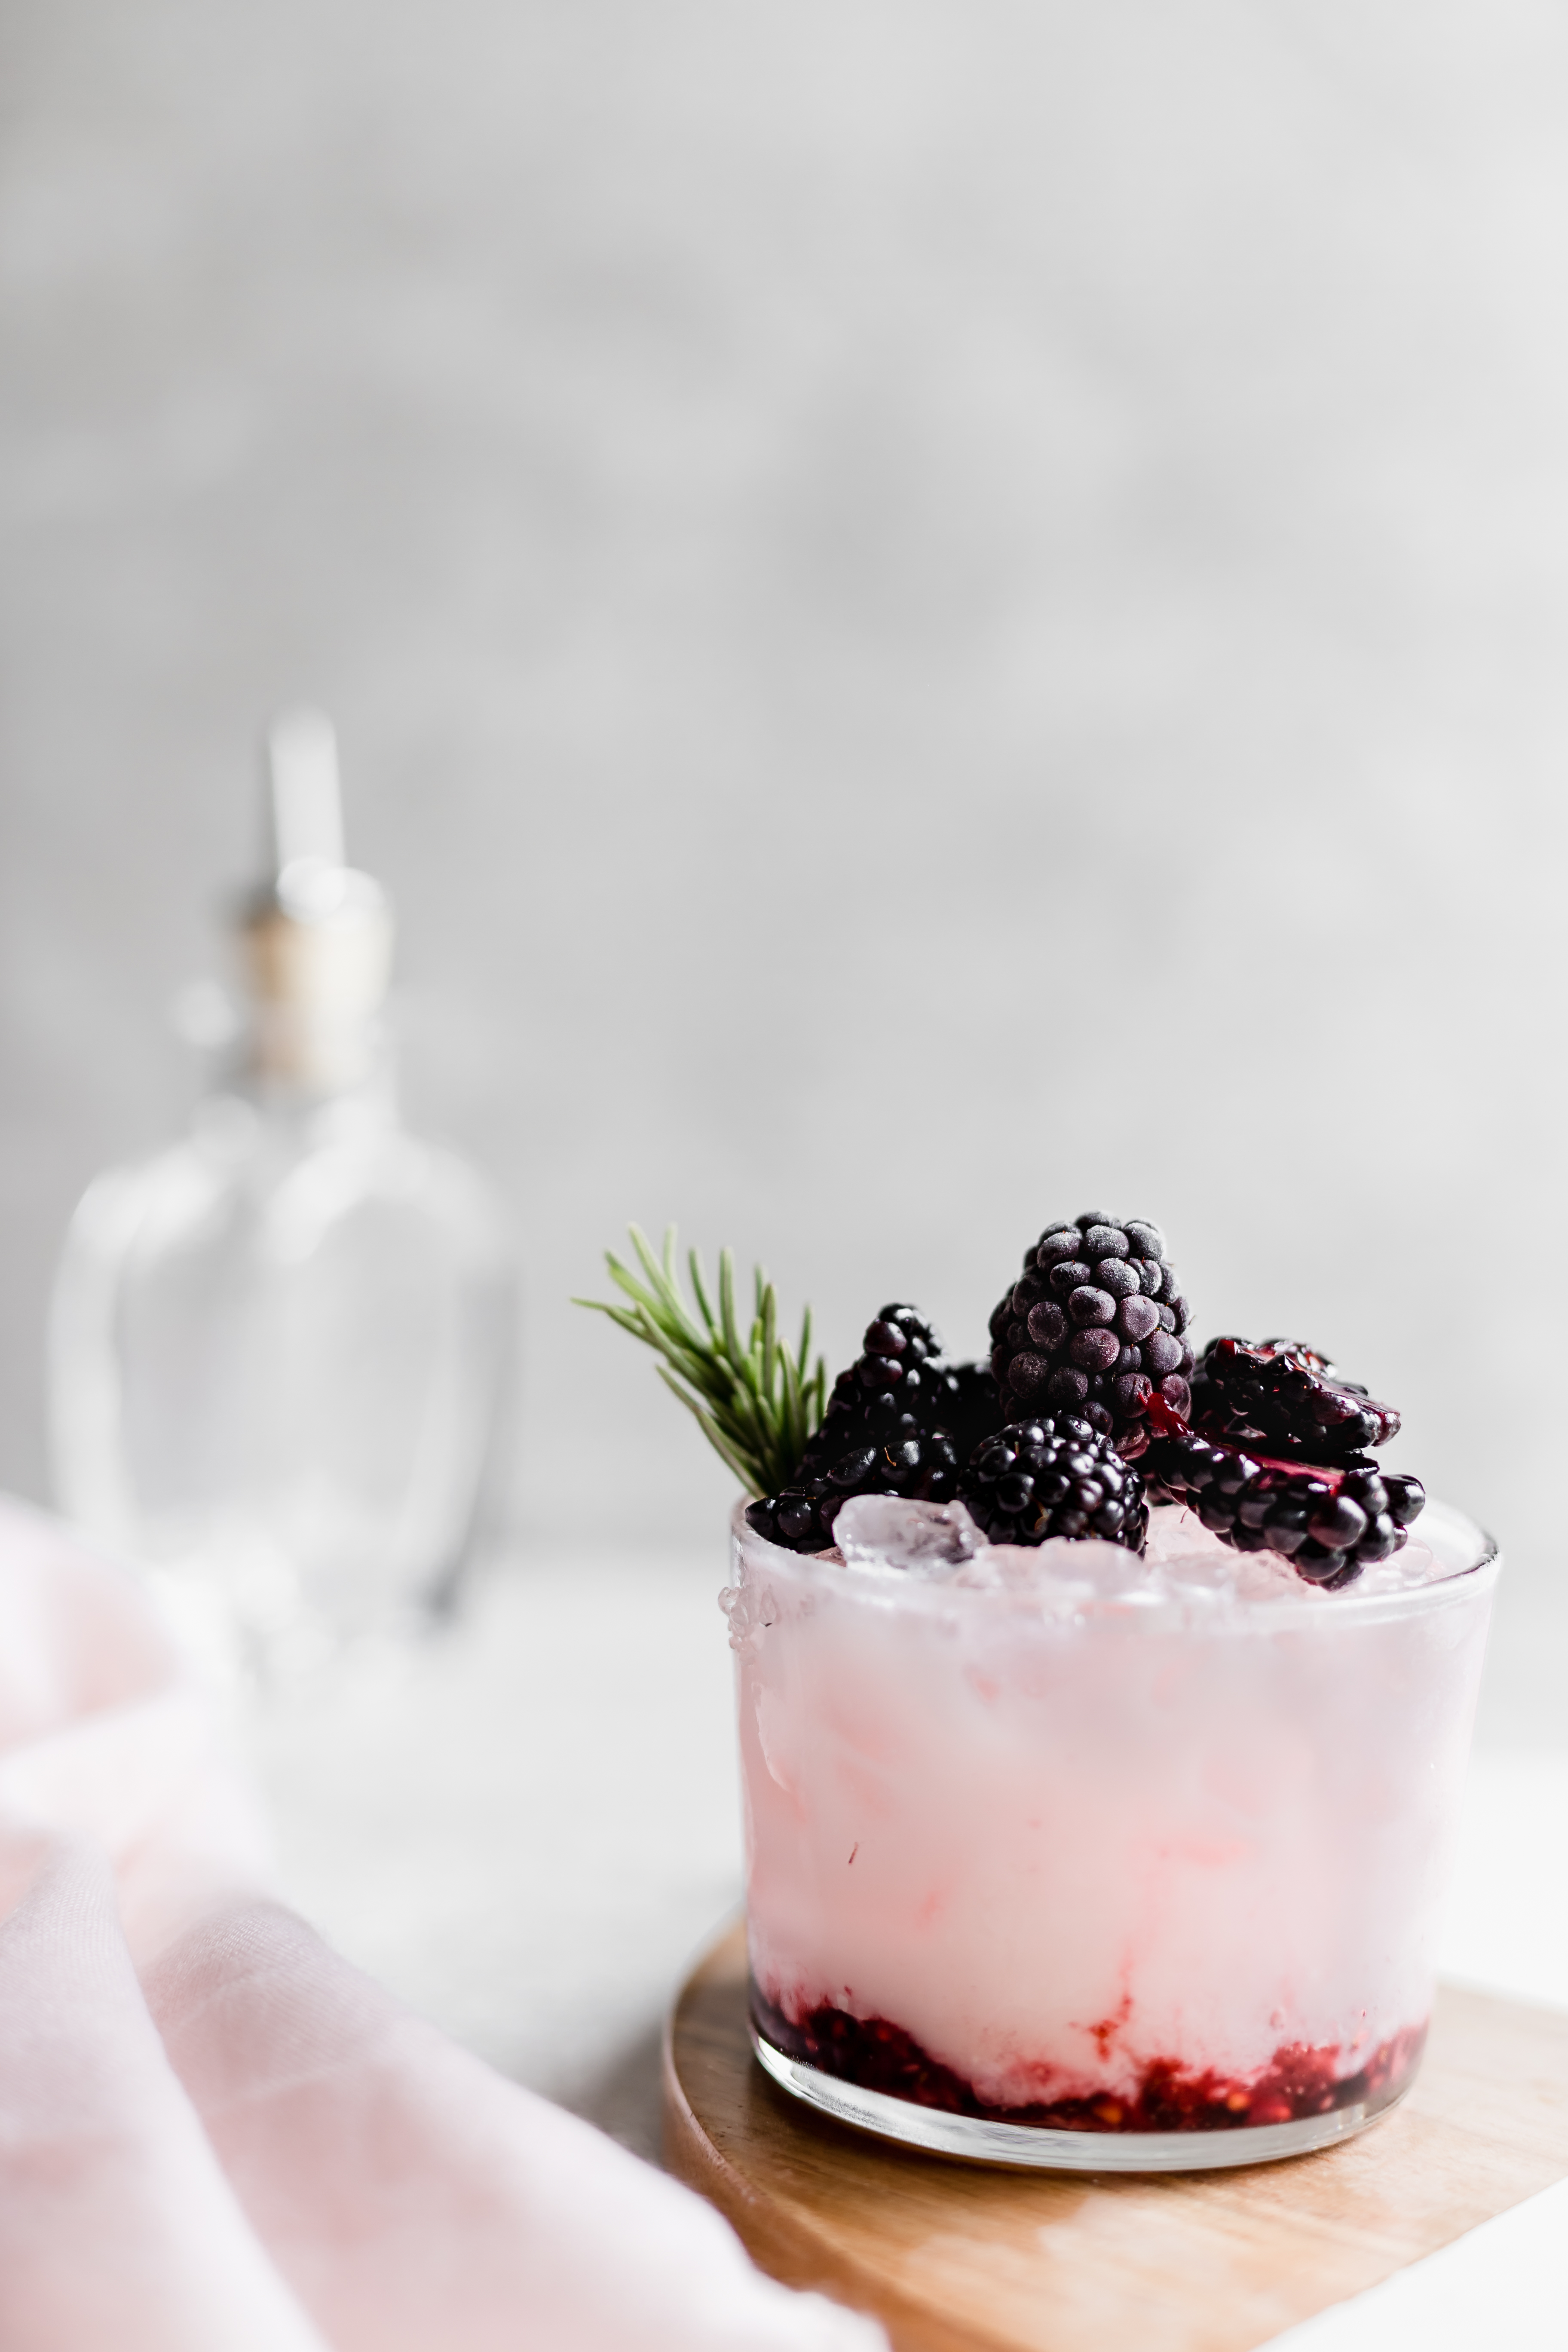 Spring Cocktails | Coconut Rosewater Blackberry Smash | Gin Recipe | Perfect for Bridal Shower, Wedding, or Bachelorette Party